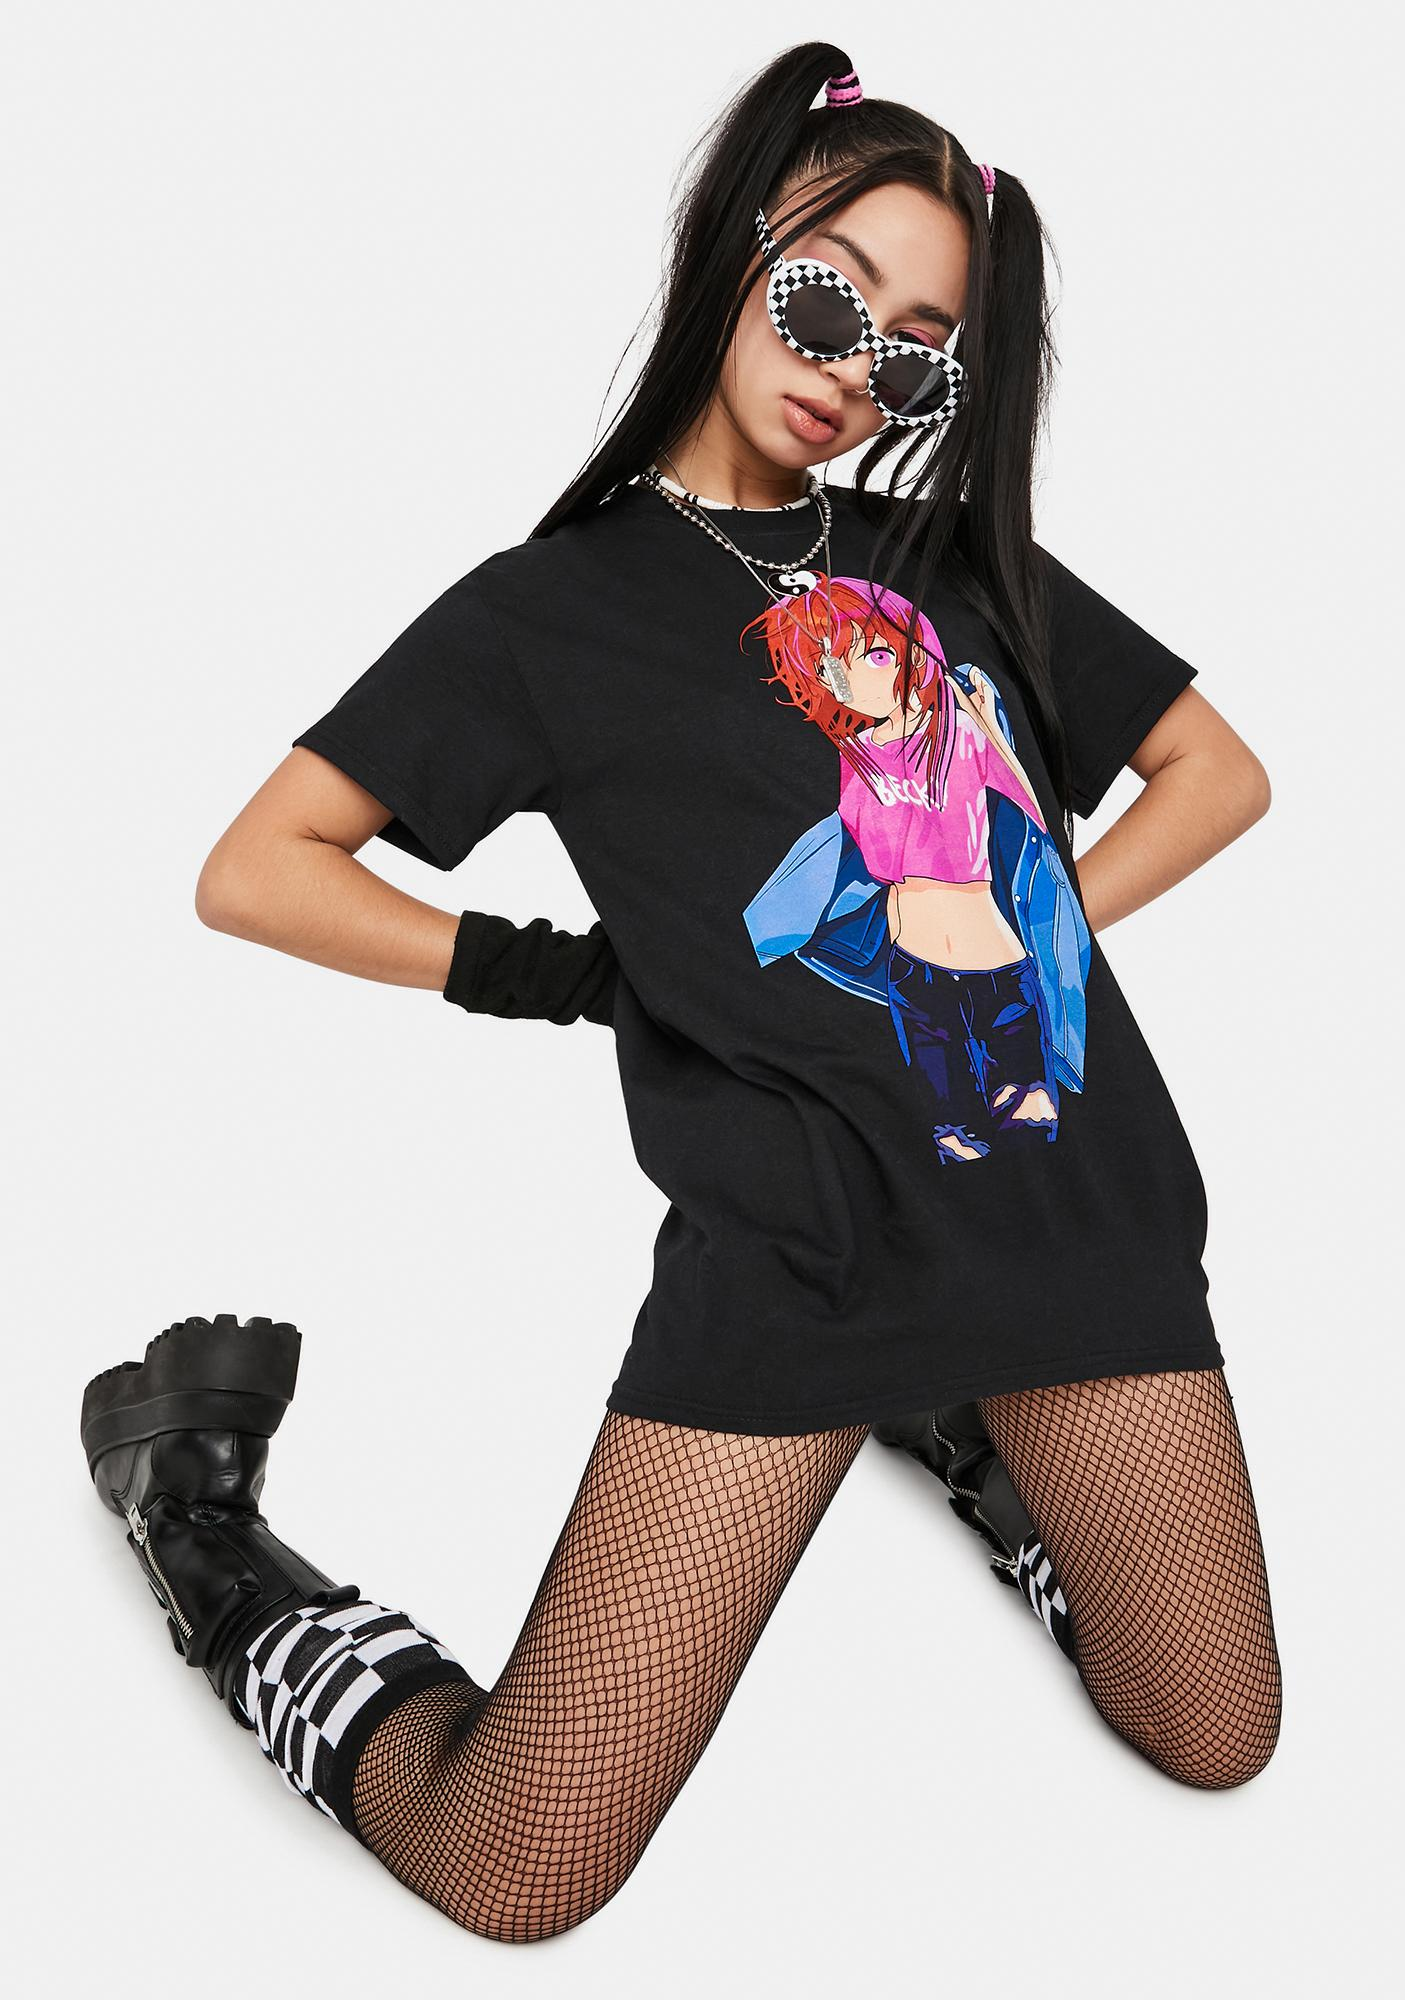 Becky Loves You Becky Jacket Graphic Tee